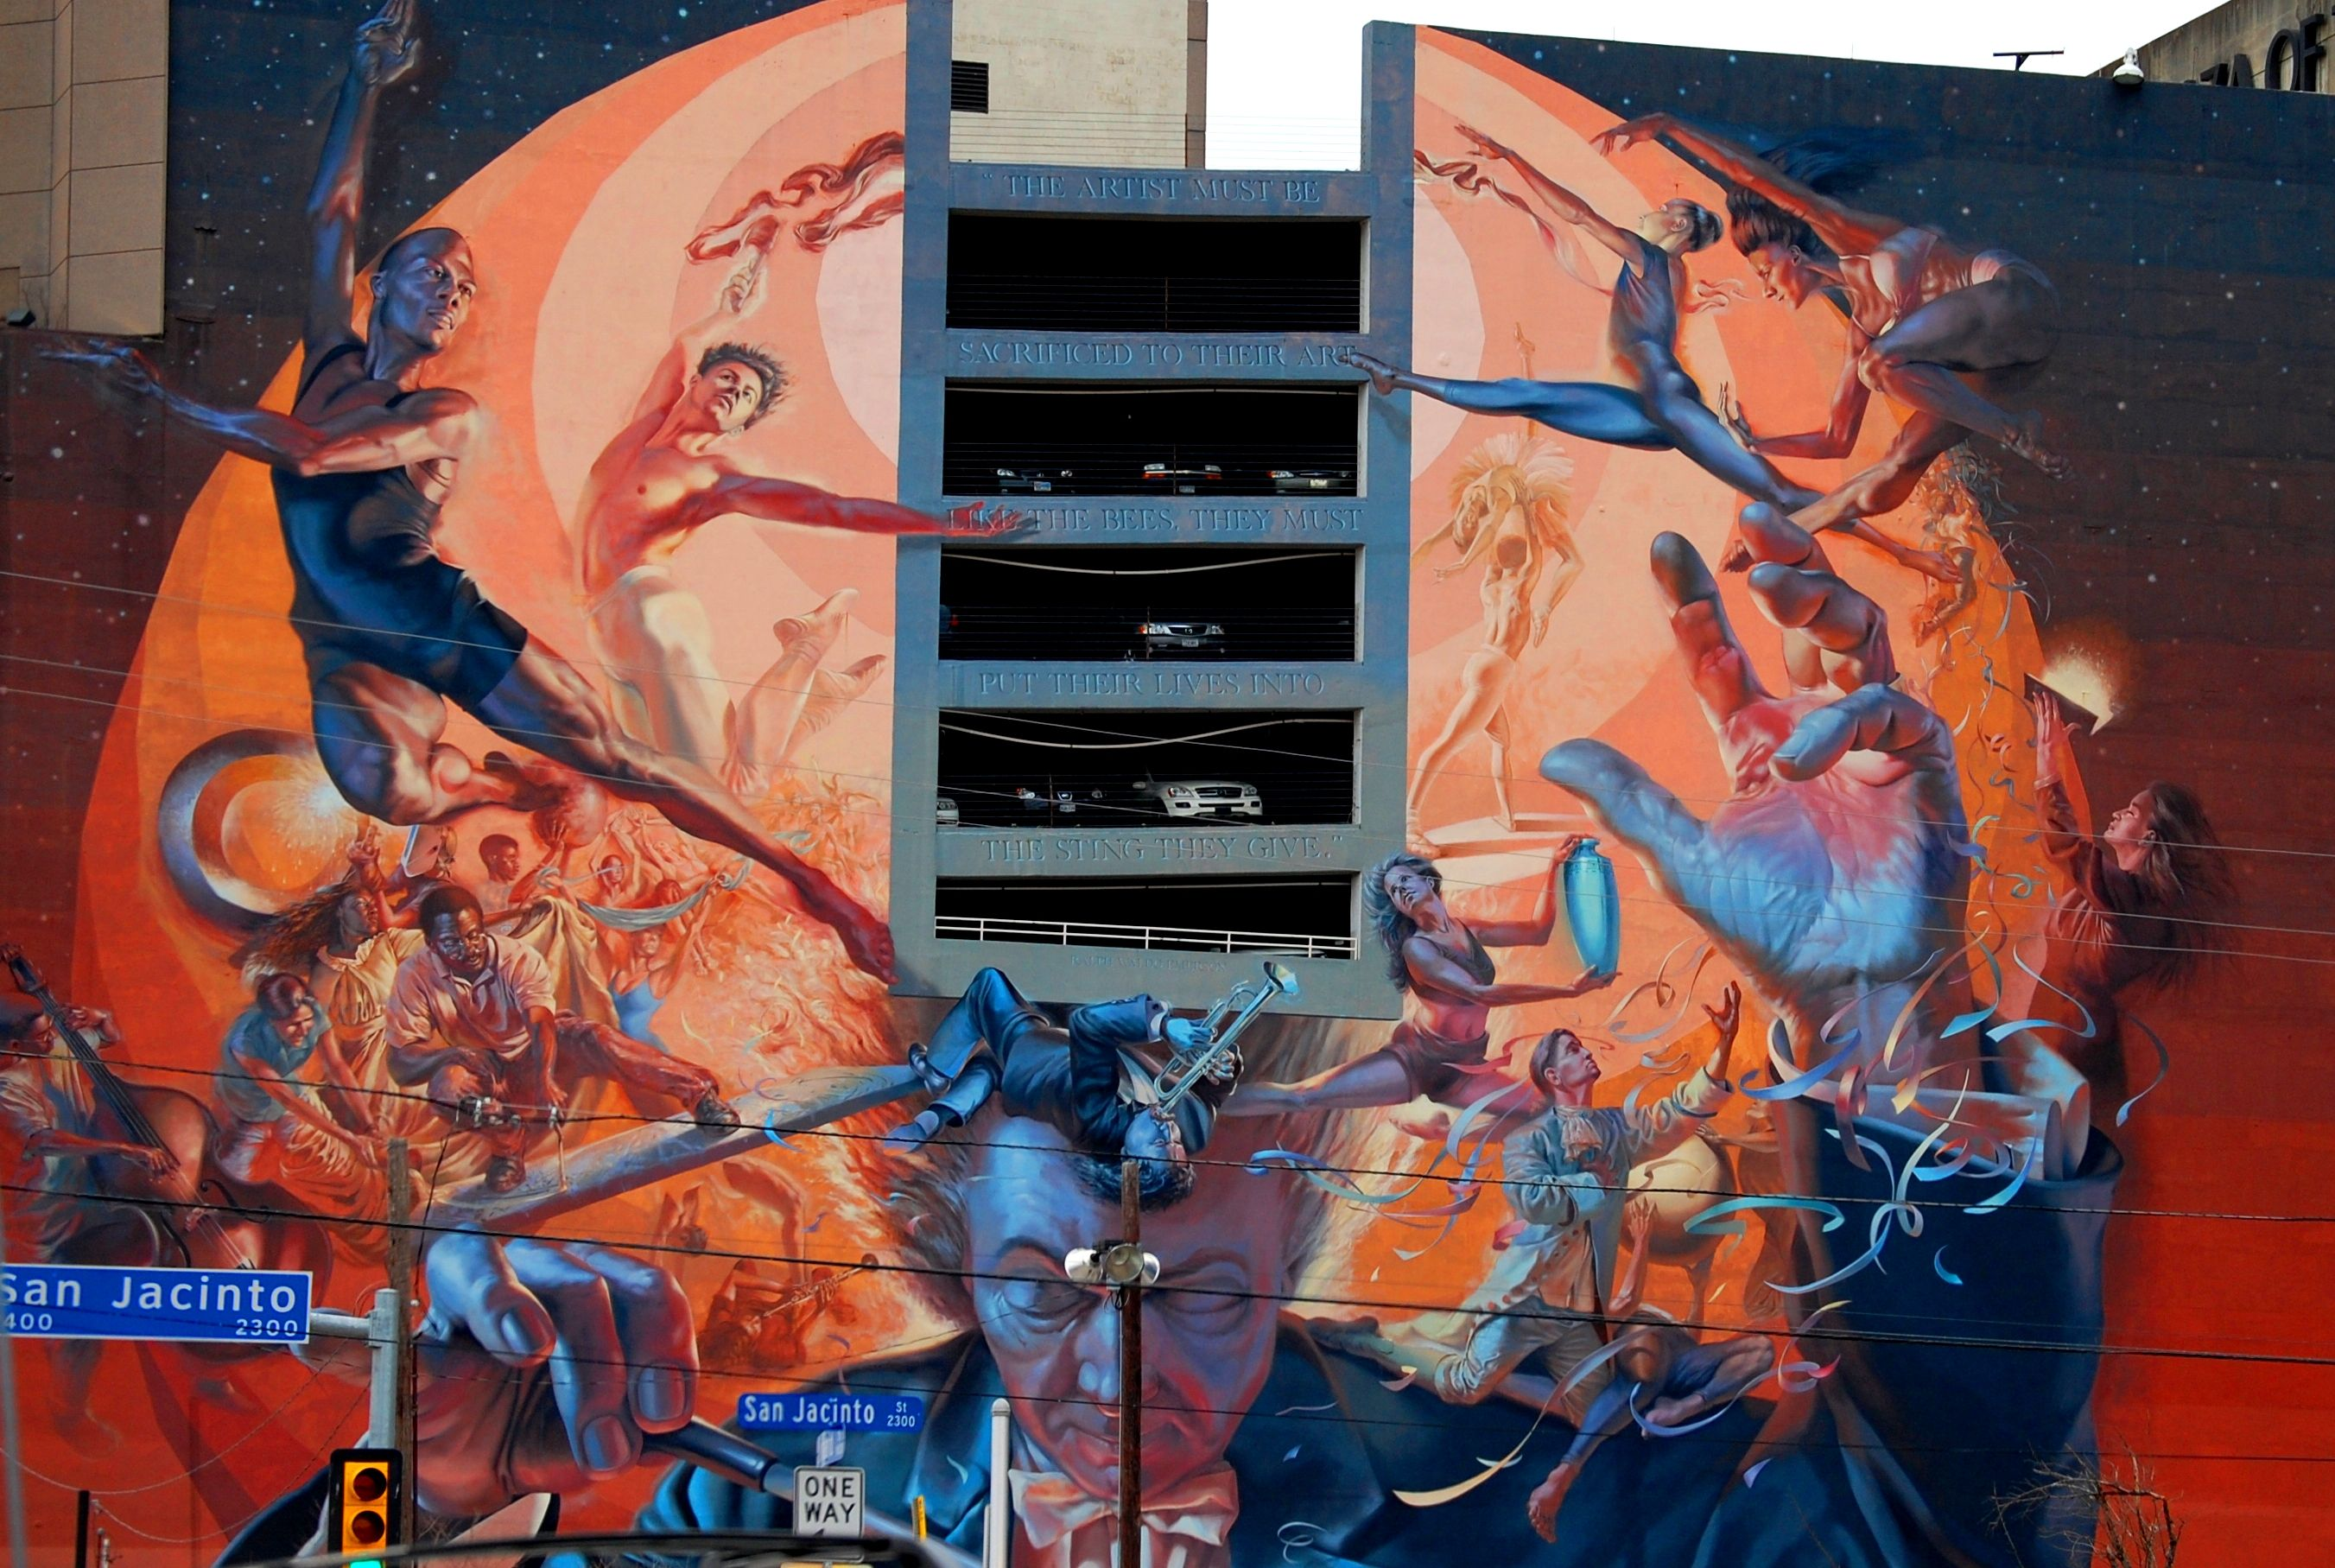 Graffiti wall dallas - Find This Pin And More On Murals Graffiti Wall Art And Street Art By Sumoflam